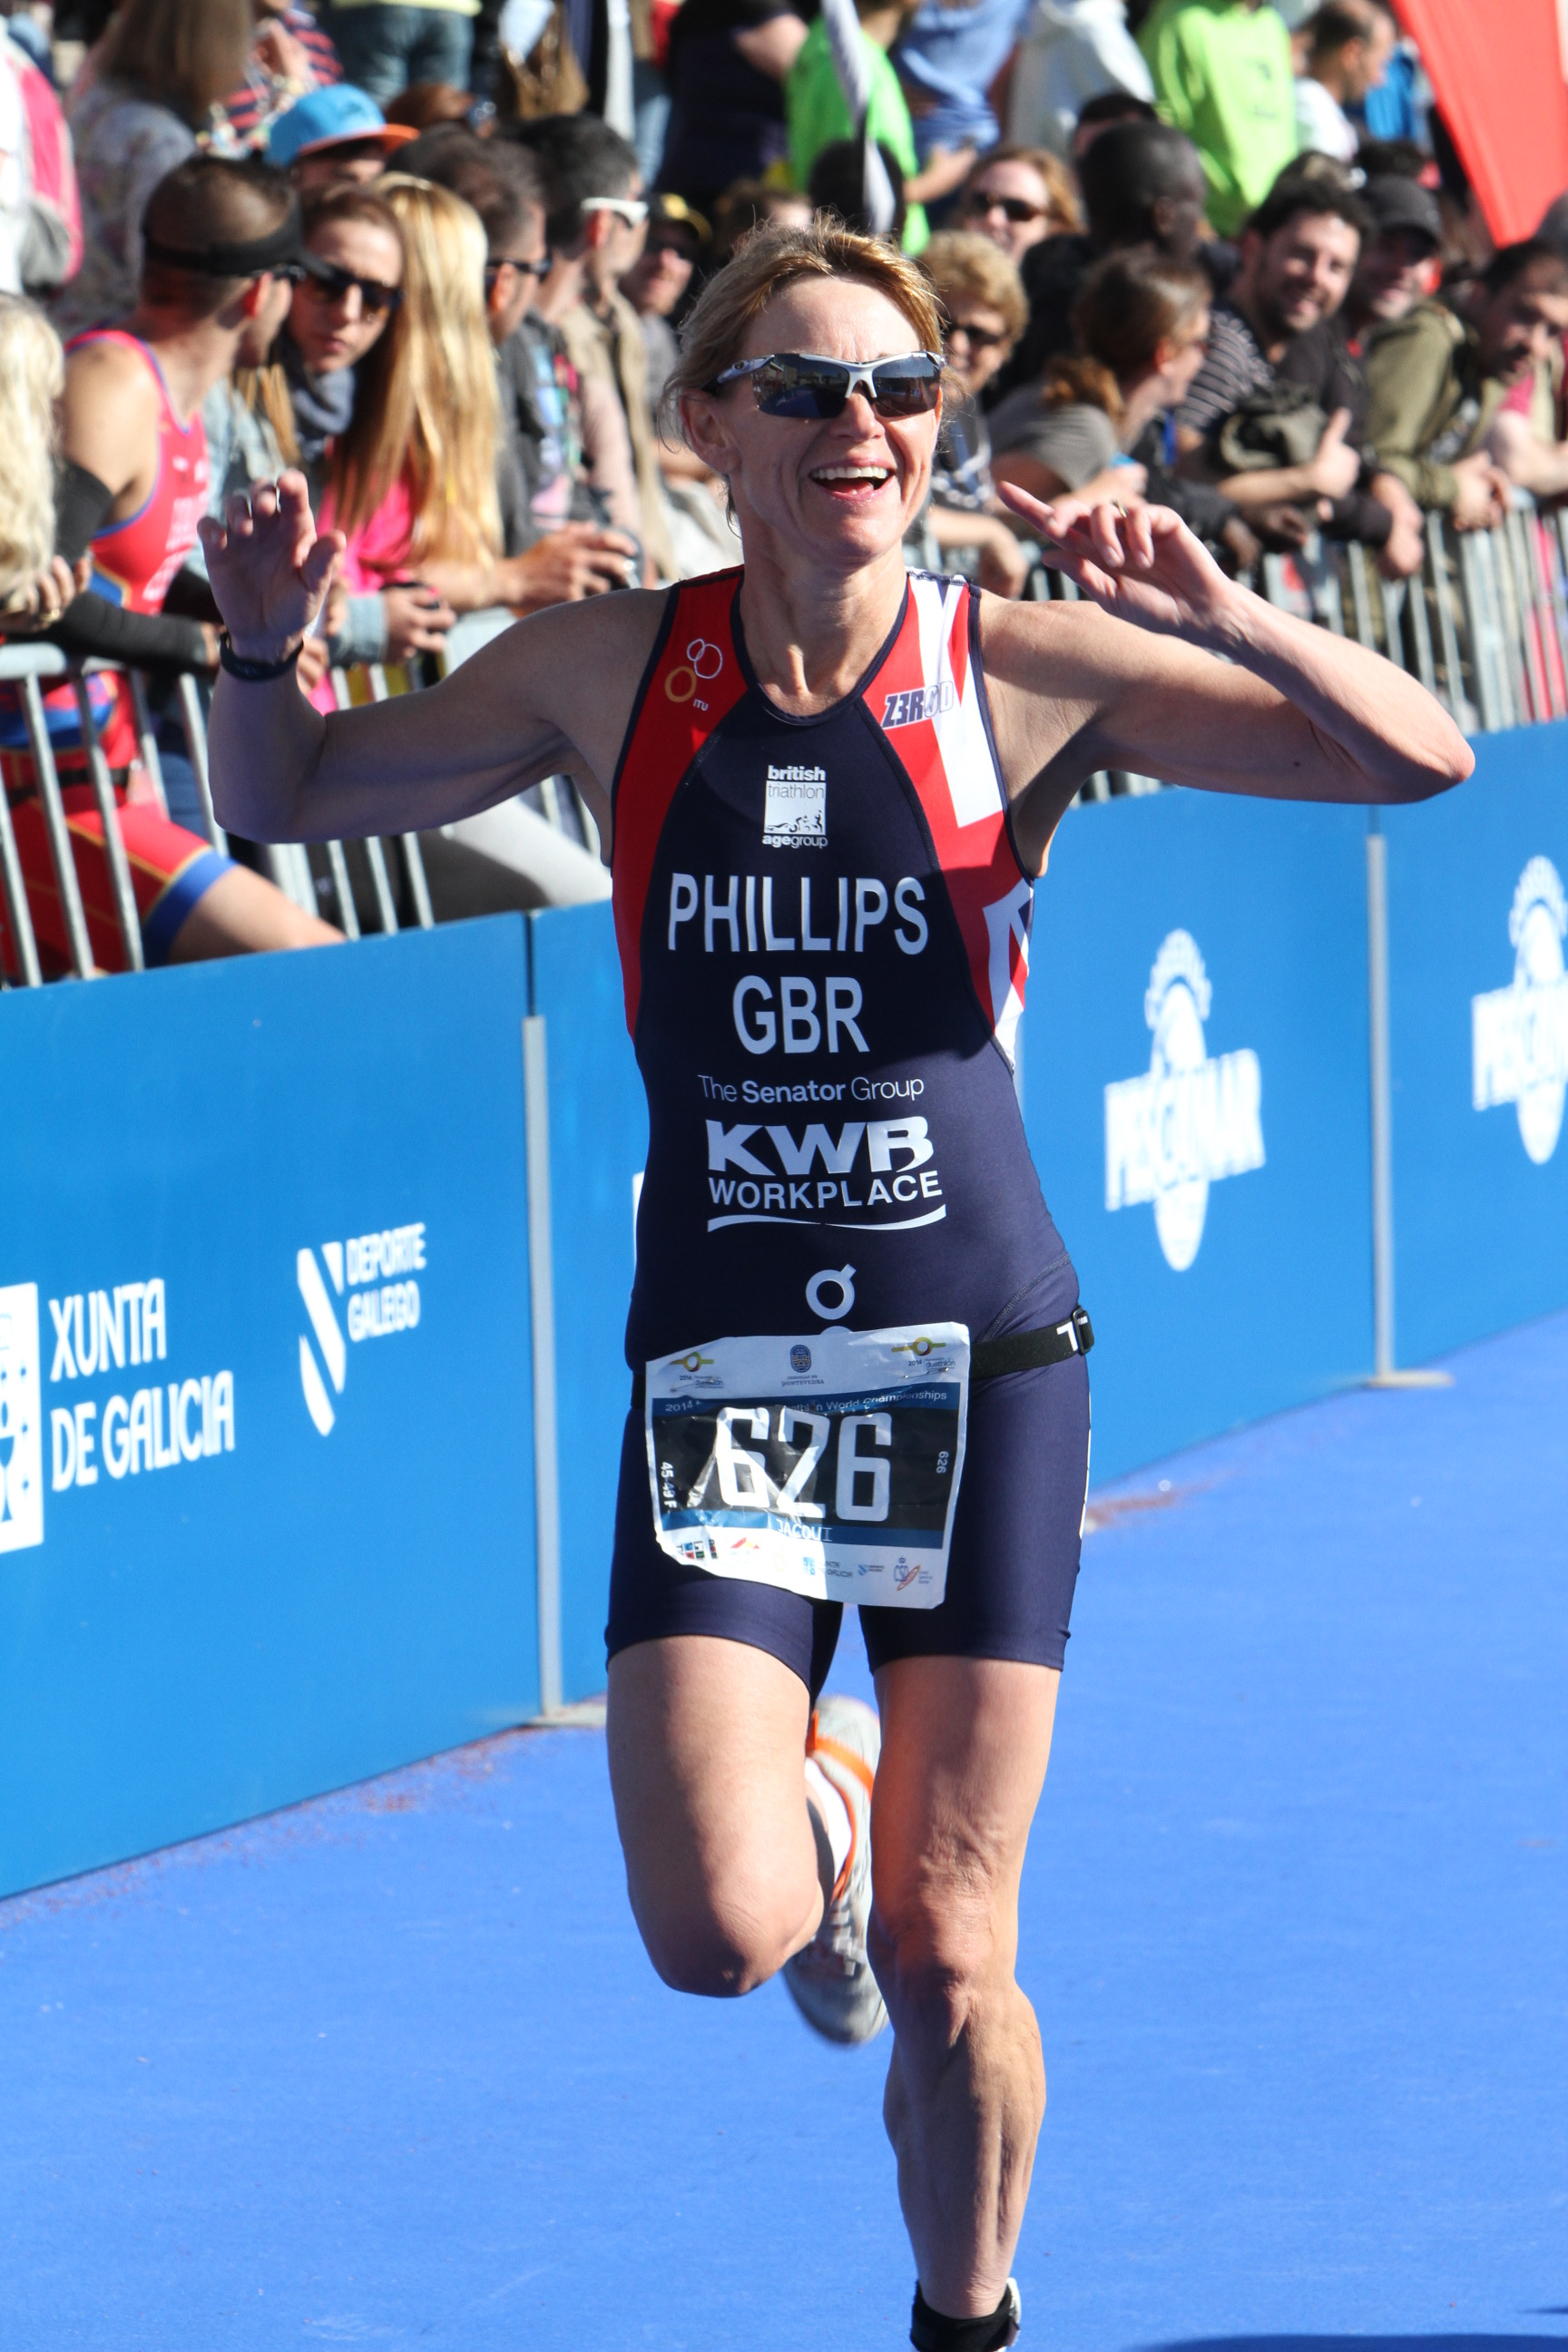 Smiling to success: Jacqui Phillips crosses the finishing line in Spain at the World Duathlon Championships.